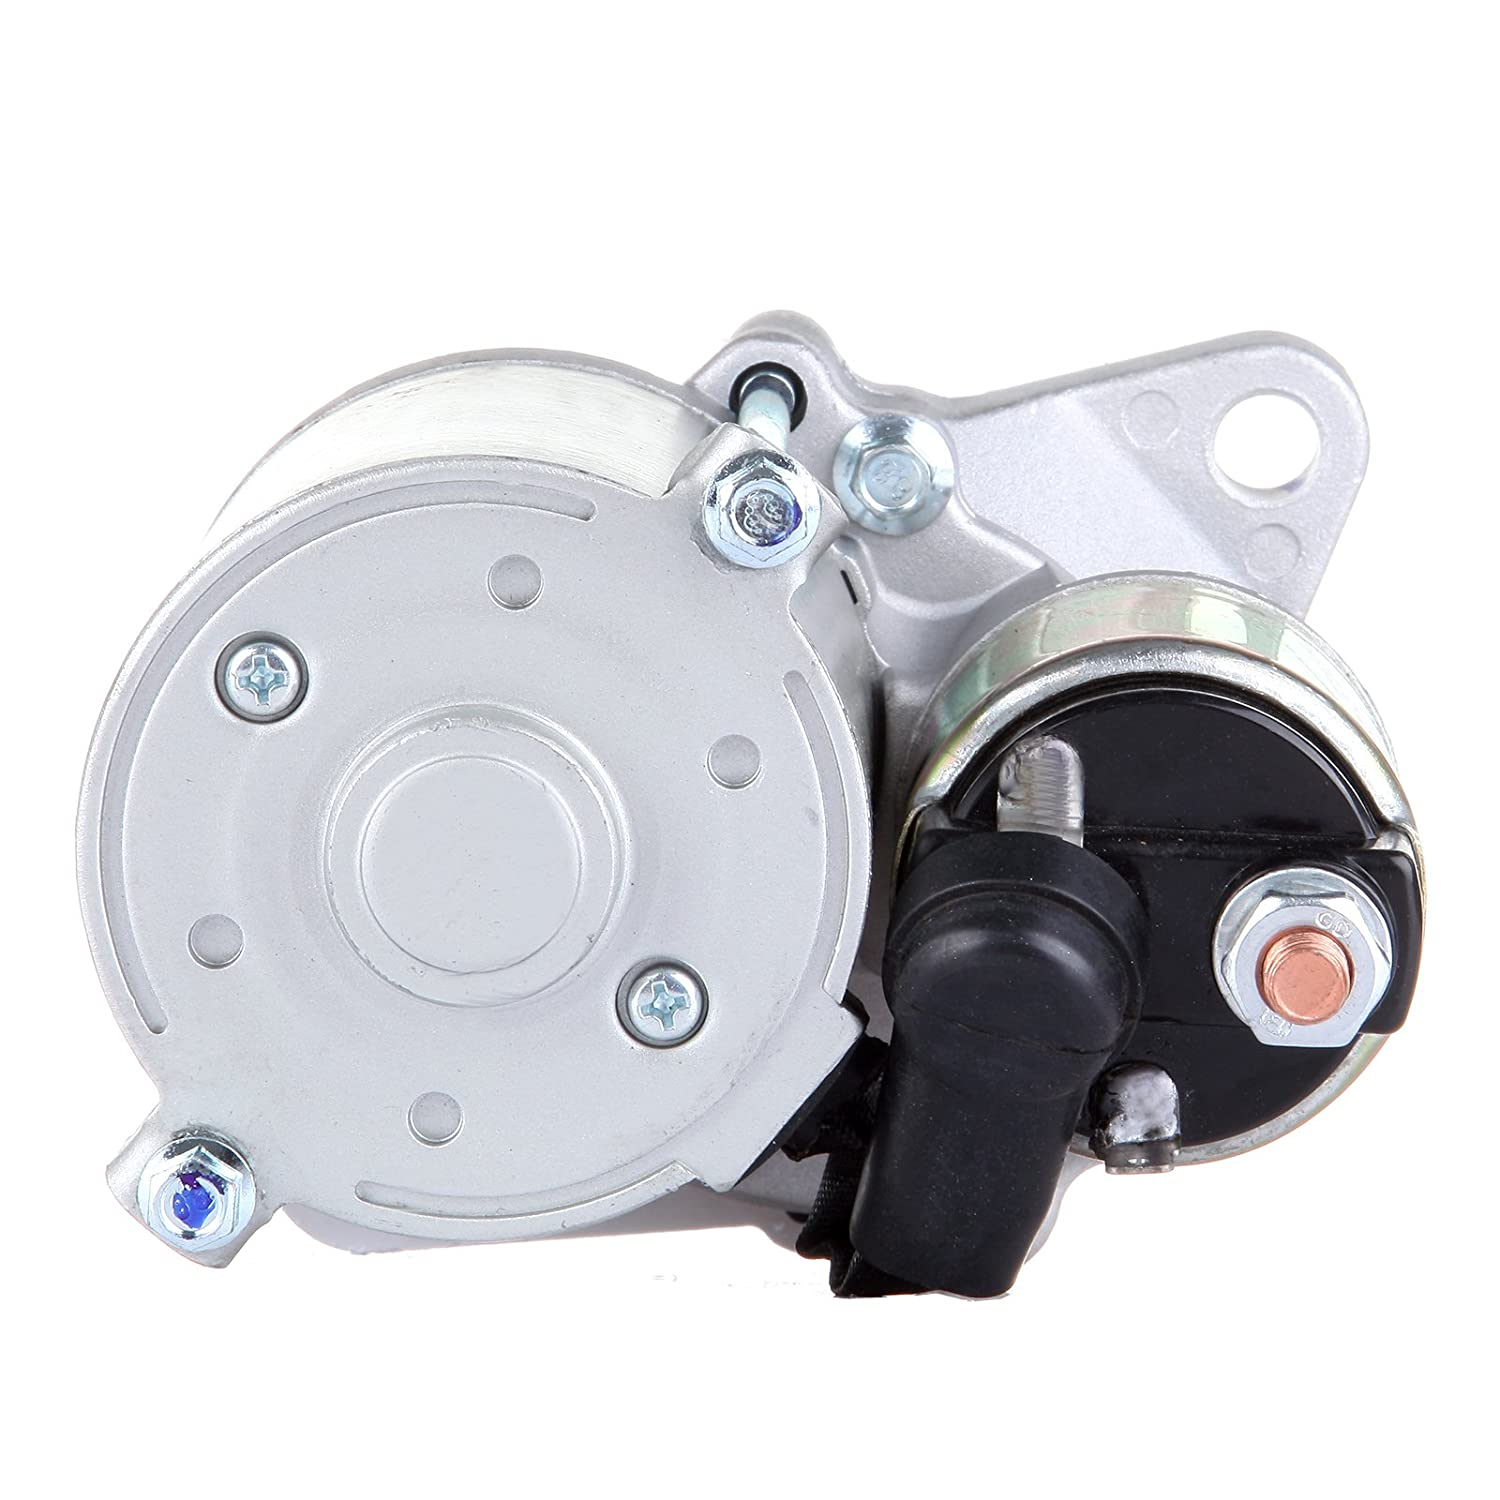 OCPTY Starter Fit for Acura CL and Honda Accord 1998-1900 Honda Odyssey Isuzu Oasis 1998-1999 31200-P0A-A04 17729N